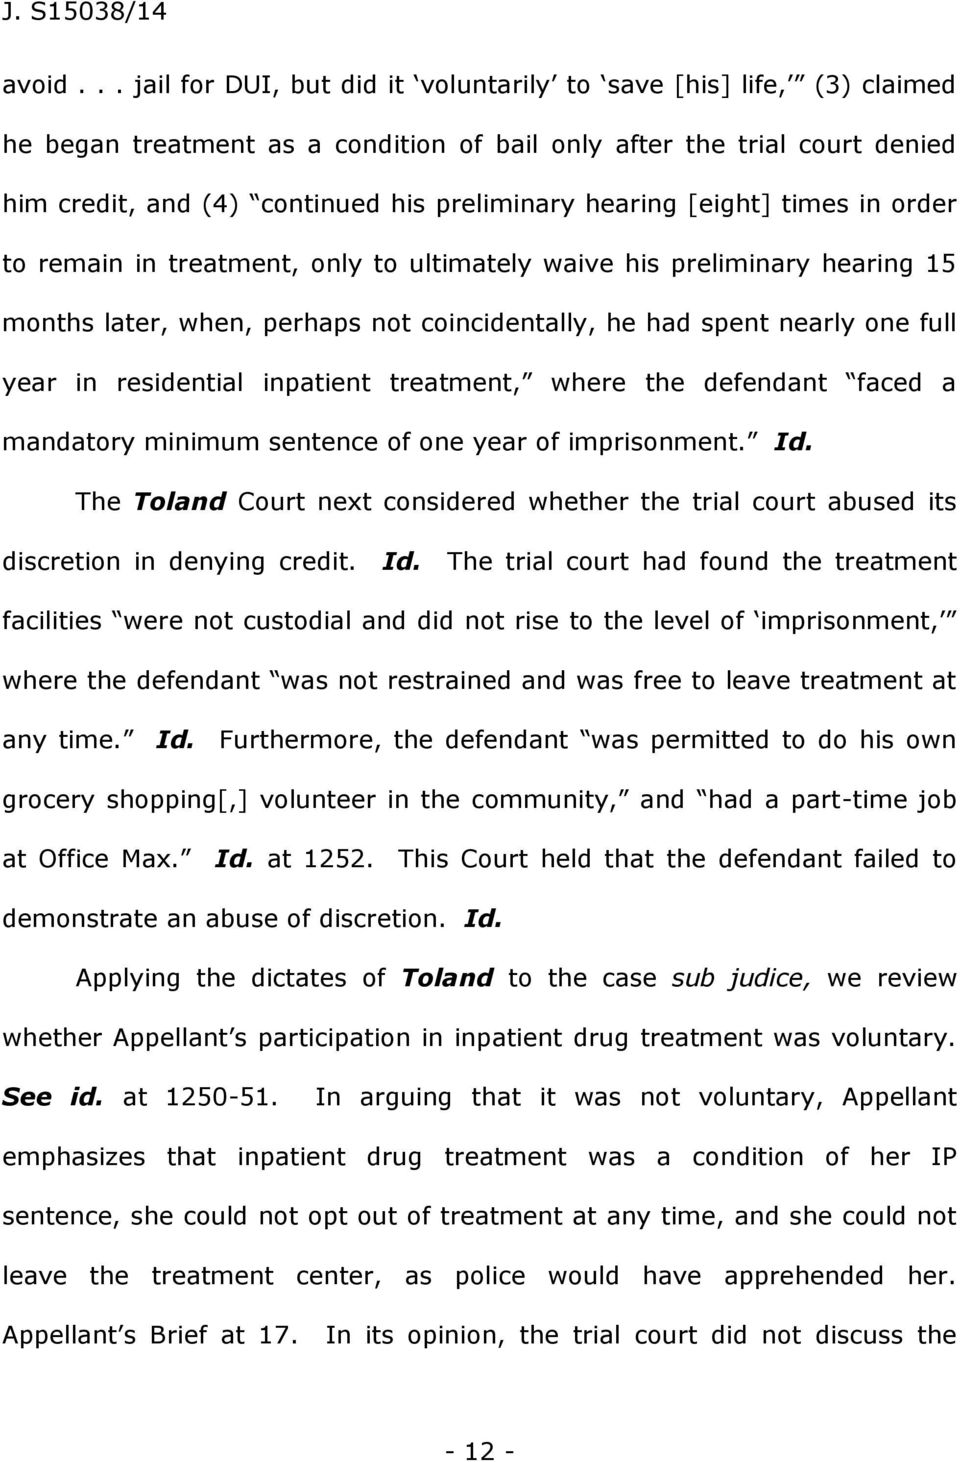 hearing [eight] times in order to remain in treatment, only to ultimately waive his preliminary hearing 15 months later, when, perhaps not coincidentally, he had spent nearly one full year in